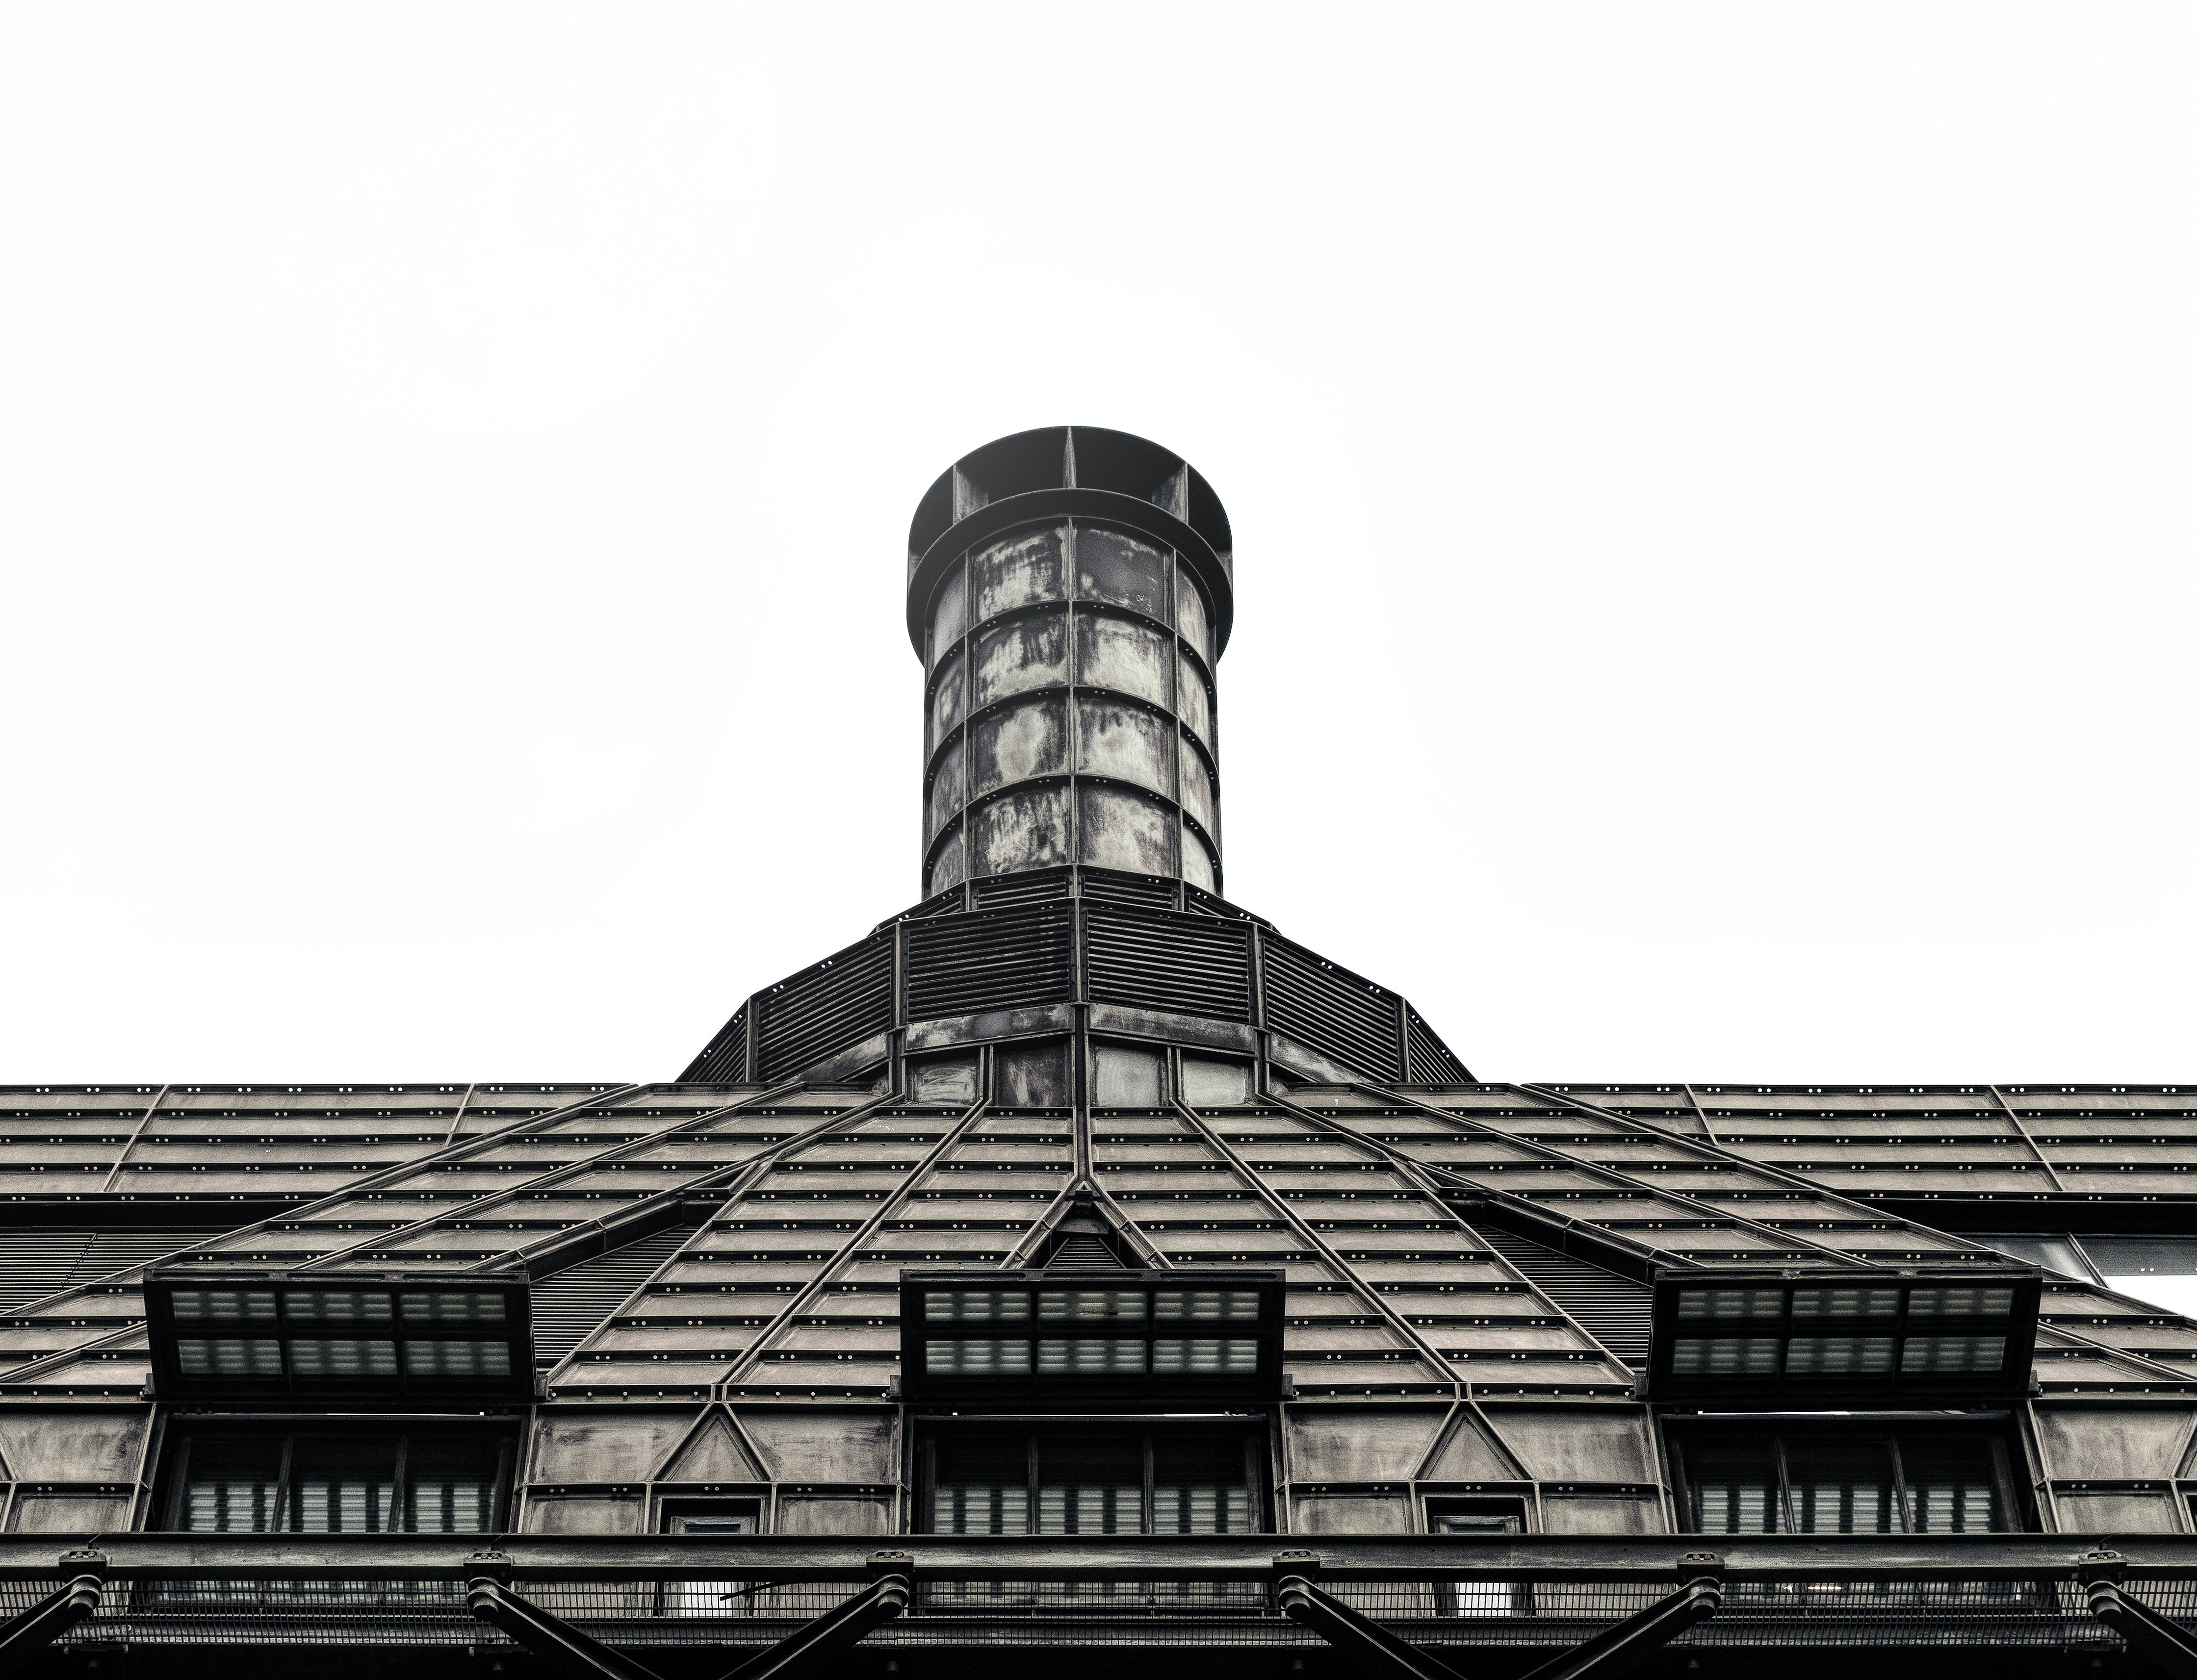 Free stock photo of architecture, building, chimney, desaturated